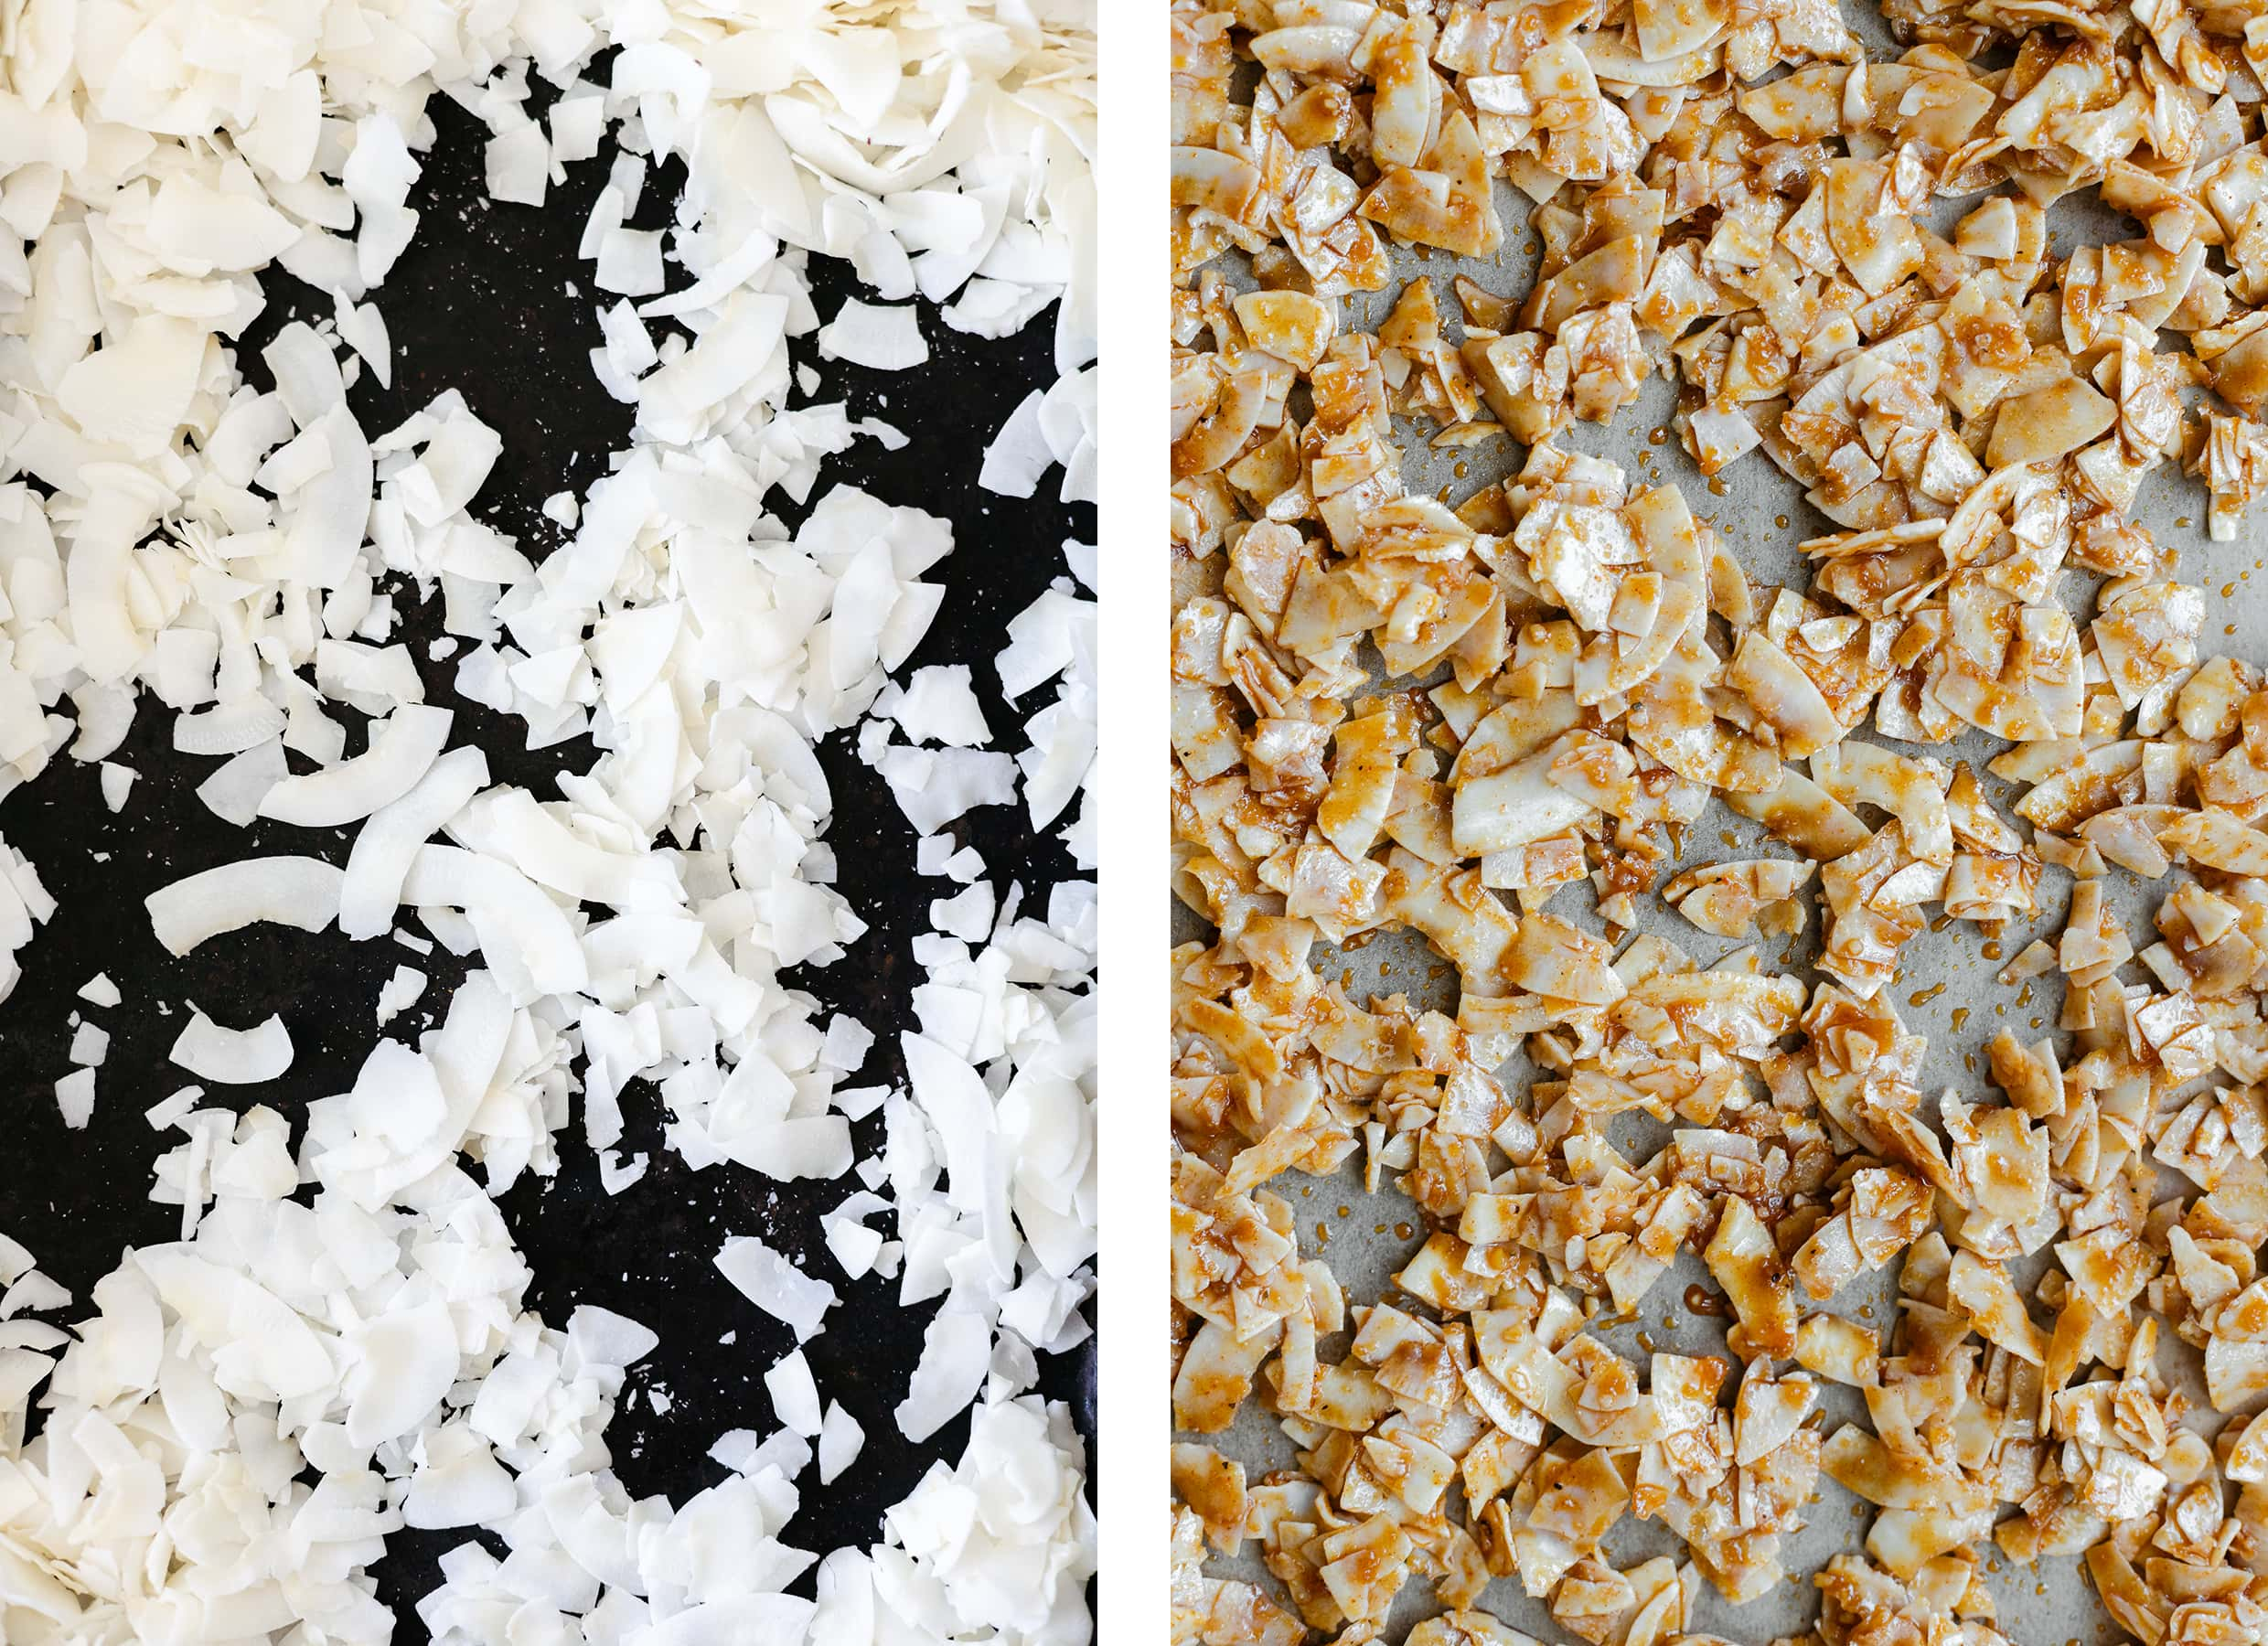 Two photos of coconut flakes on a baking sheet - one plain and one with dressing